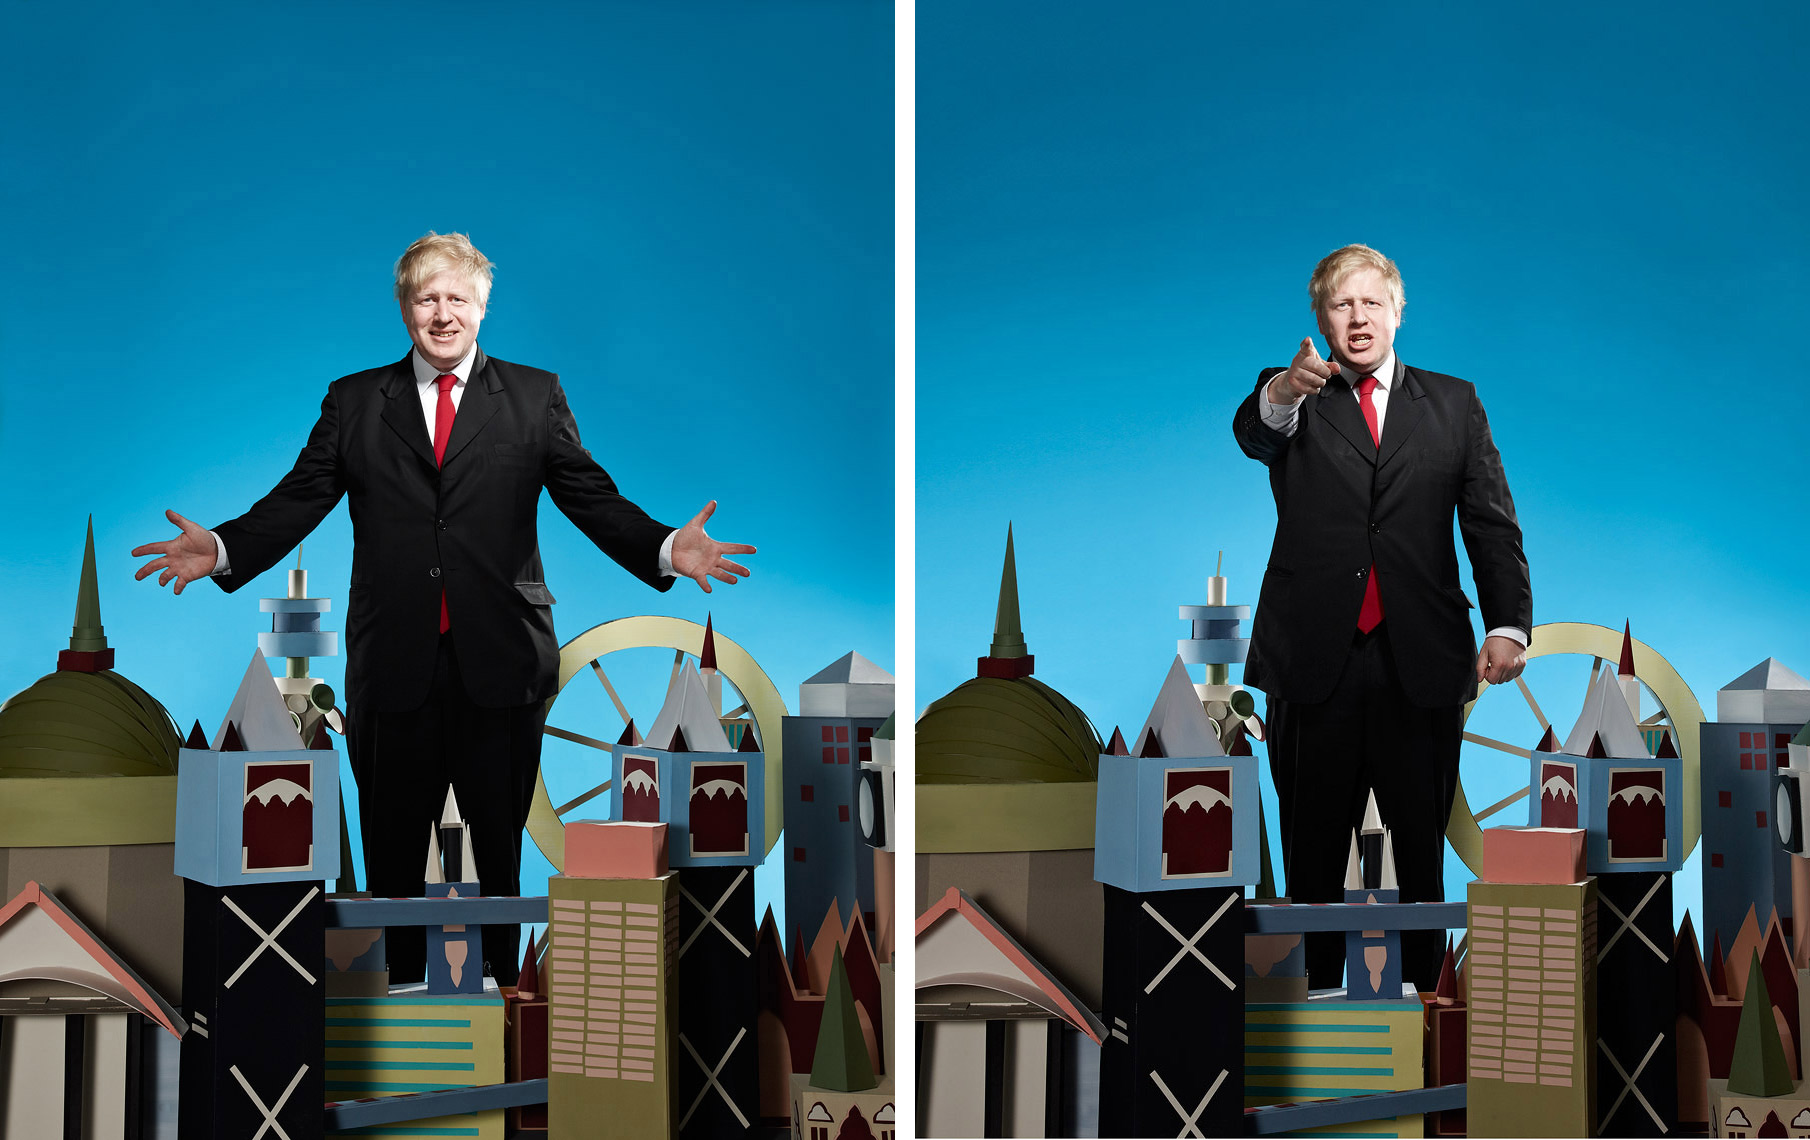 Boris Johnson Celebrity Portrait Guardian weekend Magazine